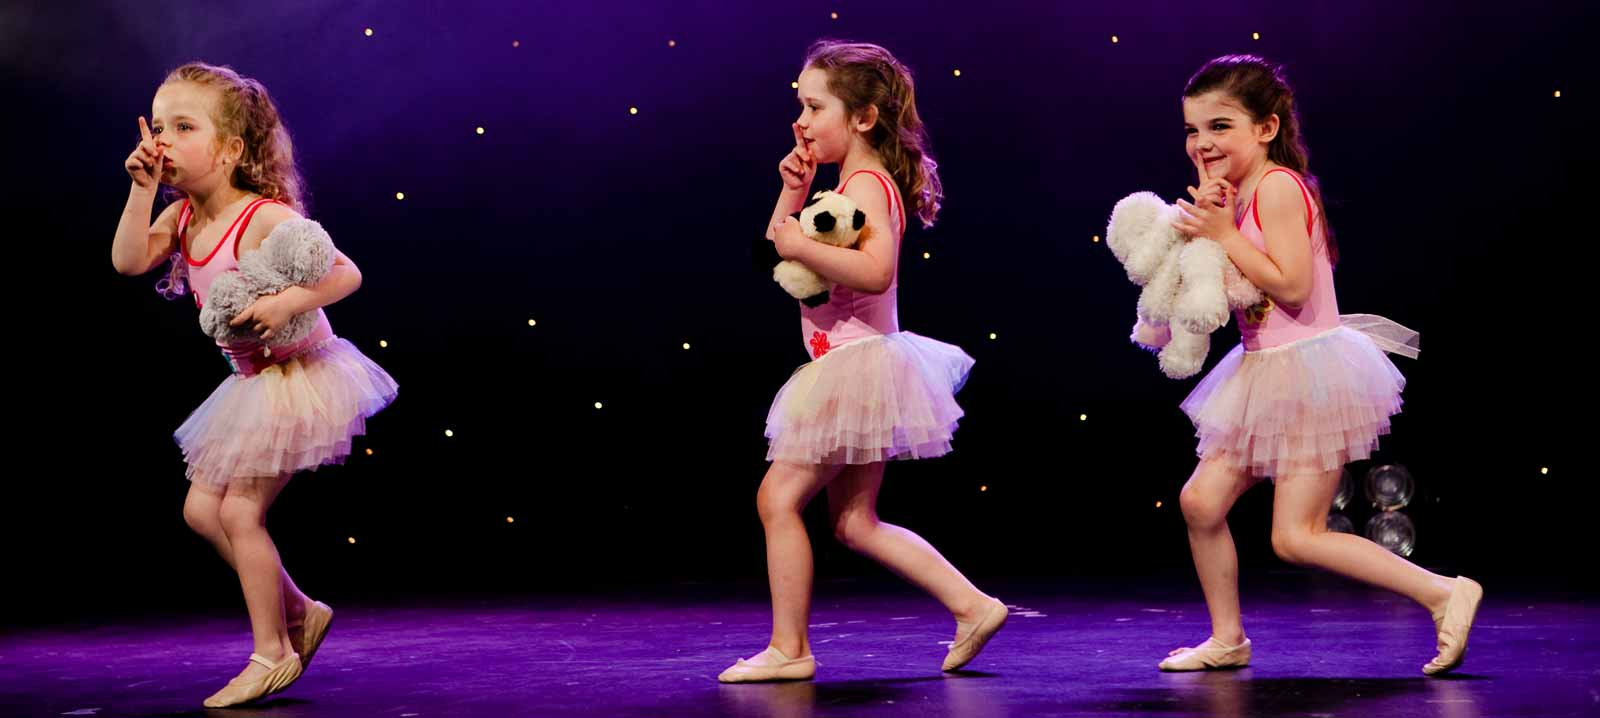 A kids ballet performance from the Aviv Dance Studios Annual Show